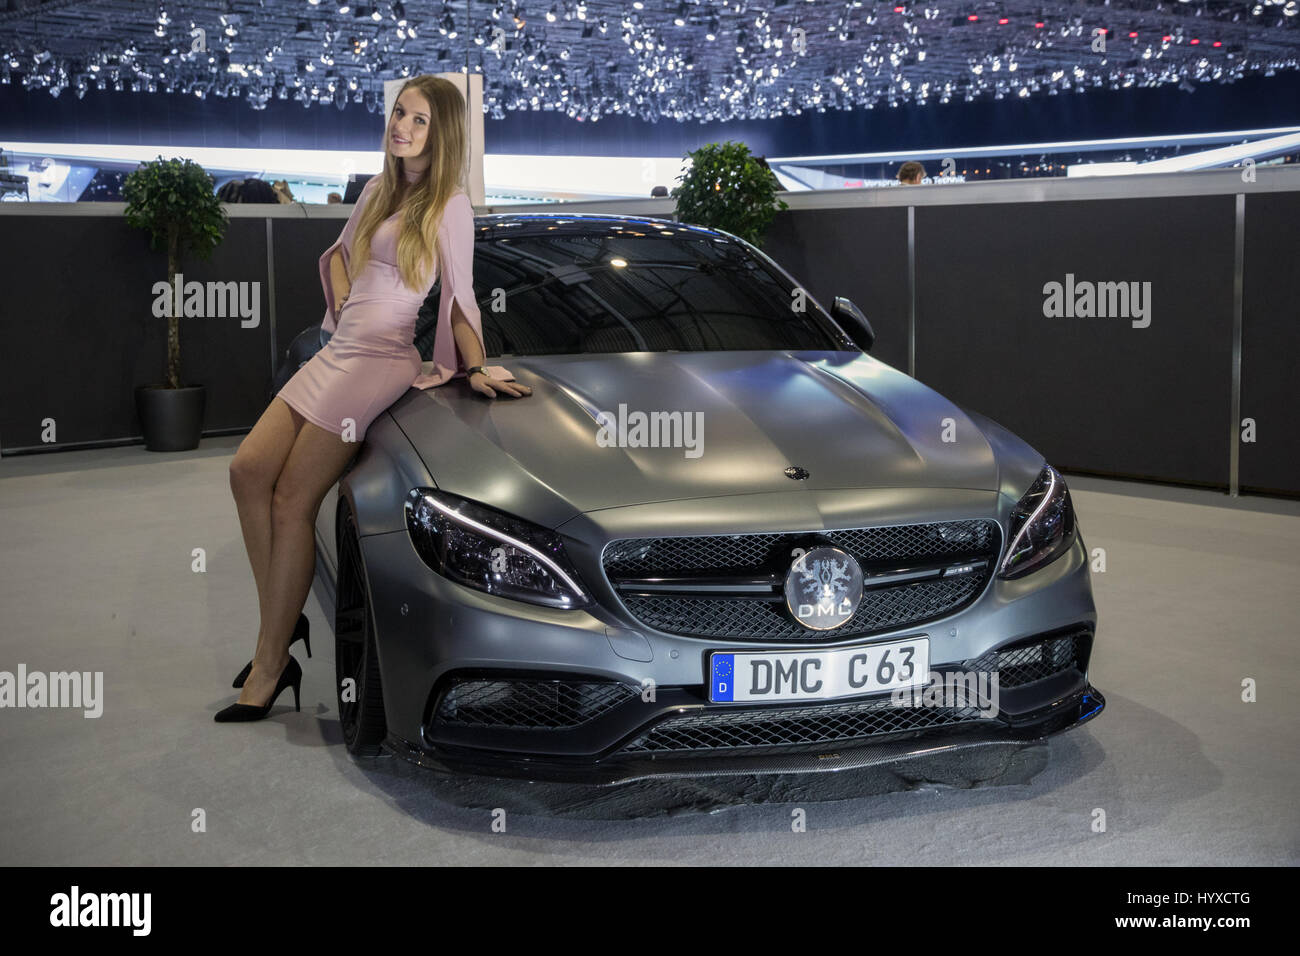 geneva switzerland march 8 2017 dmc mercedes amg c63. Black Bedroom Furniture Sets. Home Design Ideas